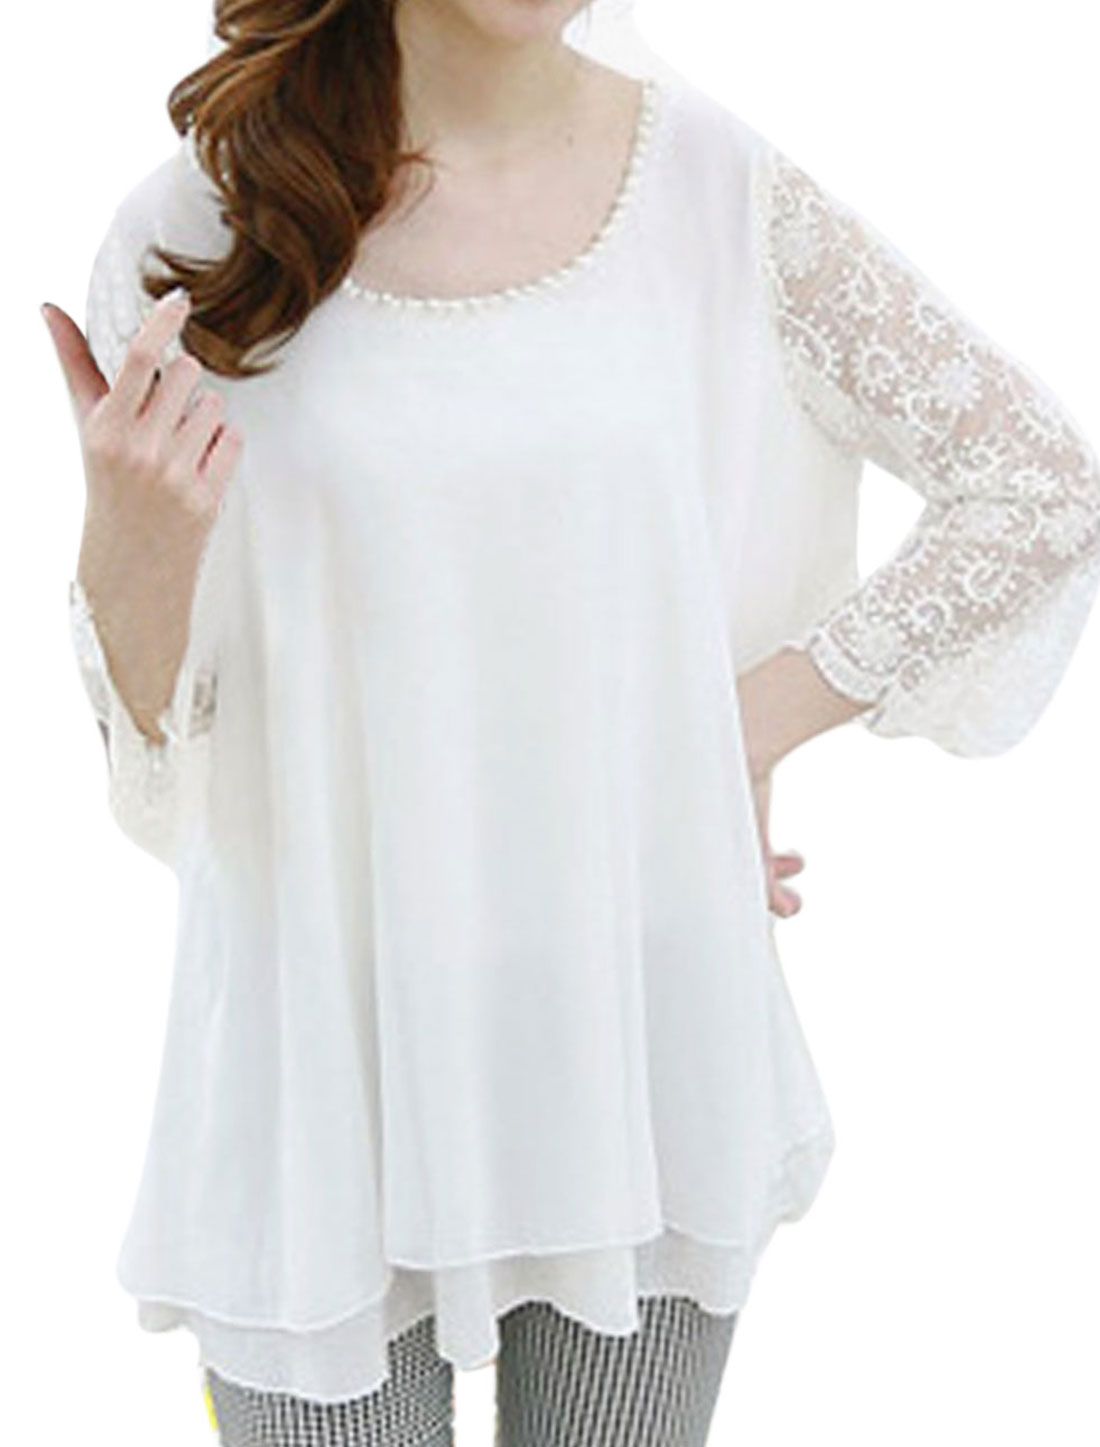 Ladies Round Neck Beaded Neckline Lace Splicing Chiffon Blouse White S